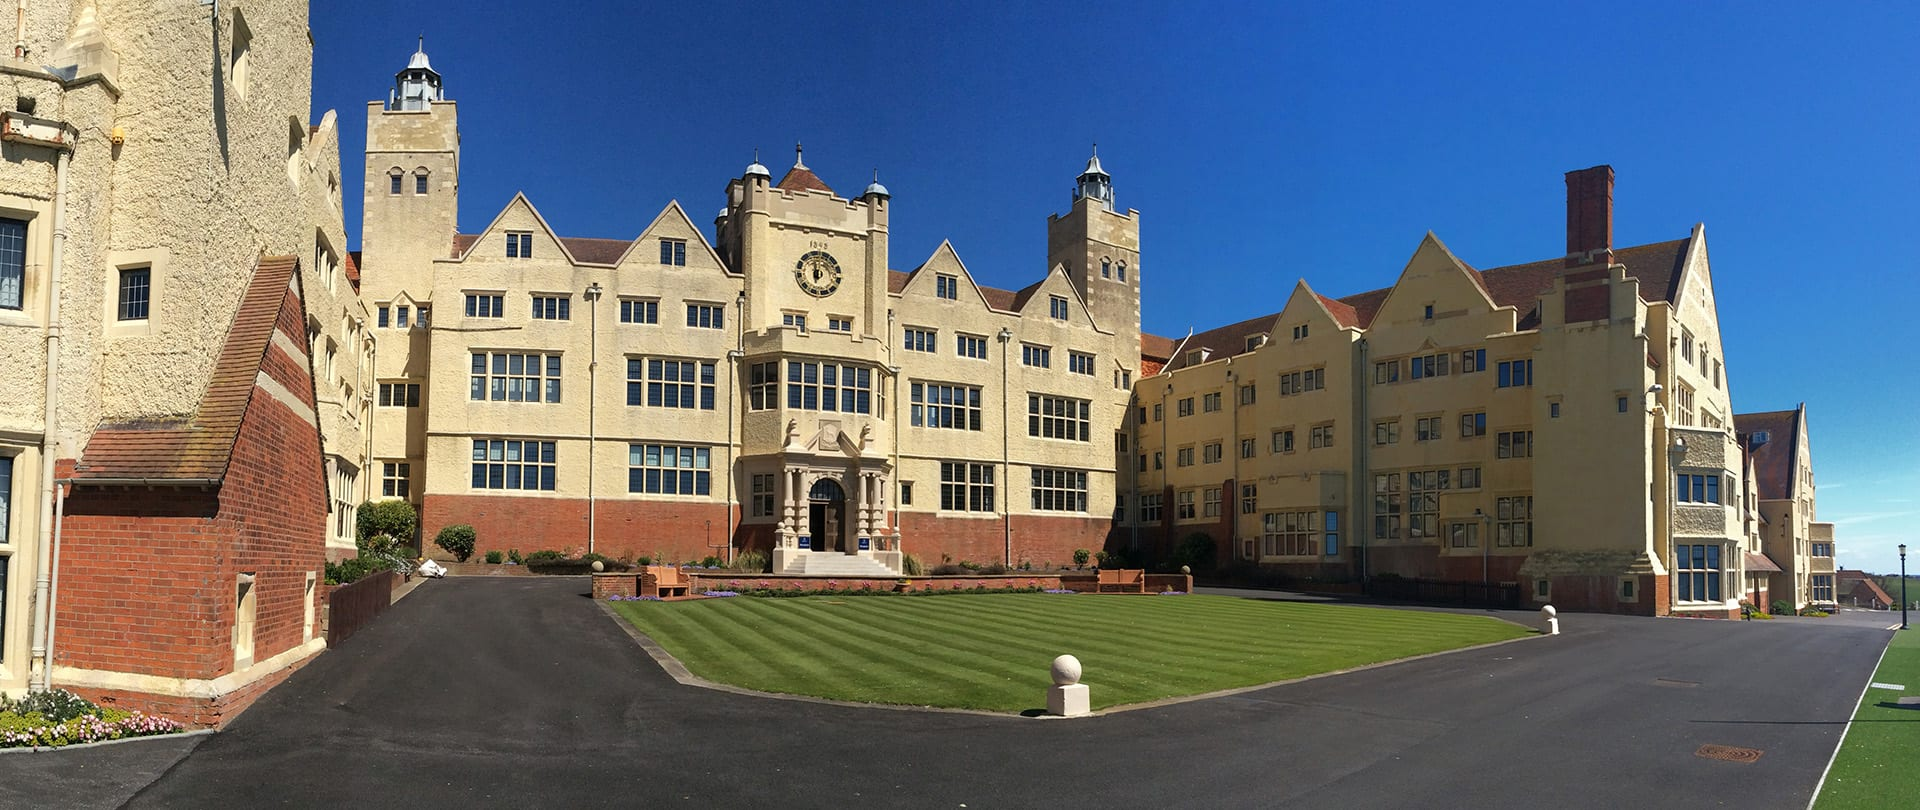 Where We Are - Roedean School